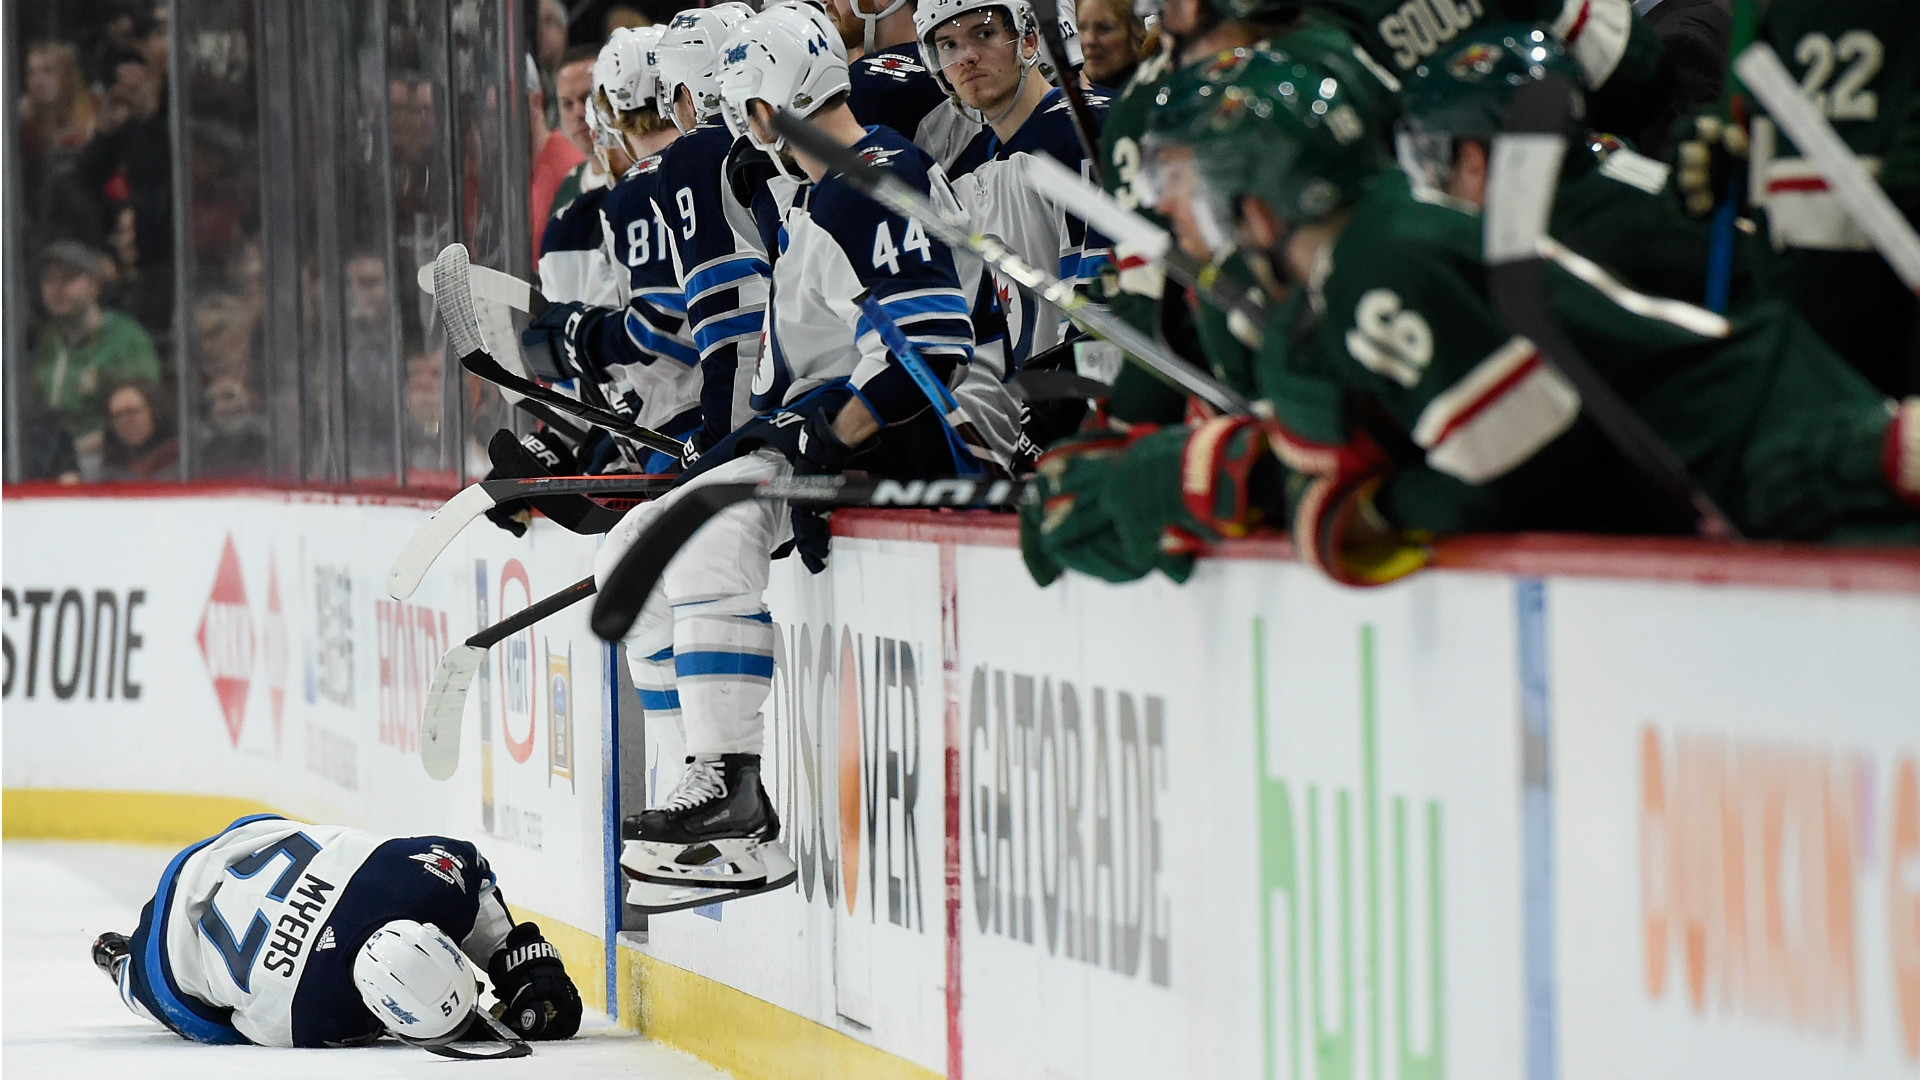 Wild have no answers for Roseau's Dustin Byfuglien and the Jets